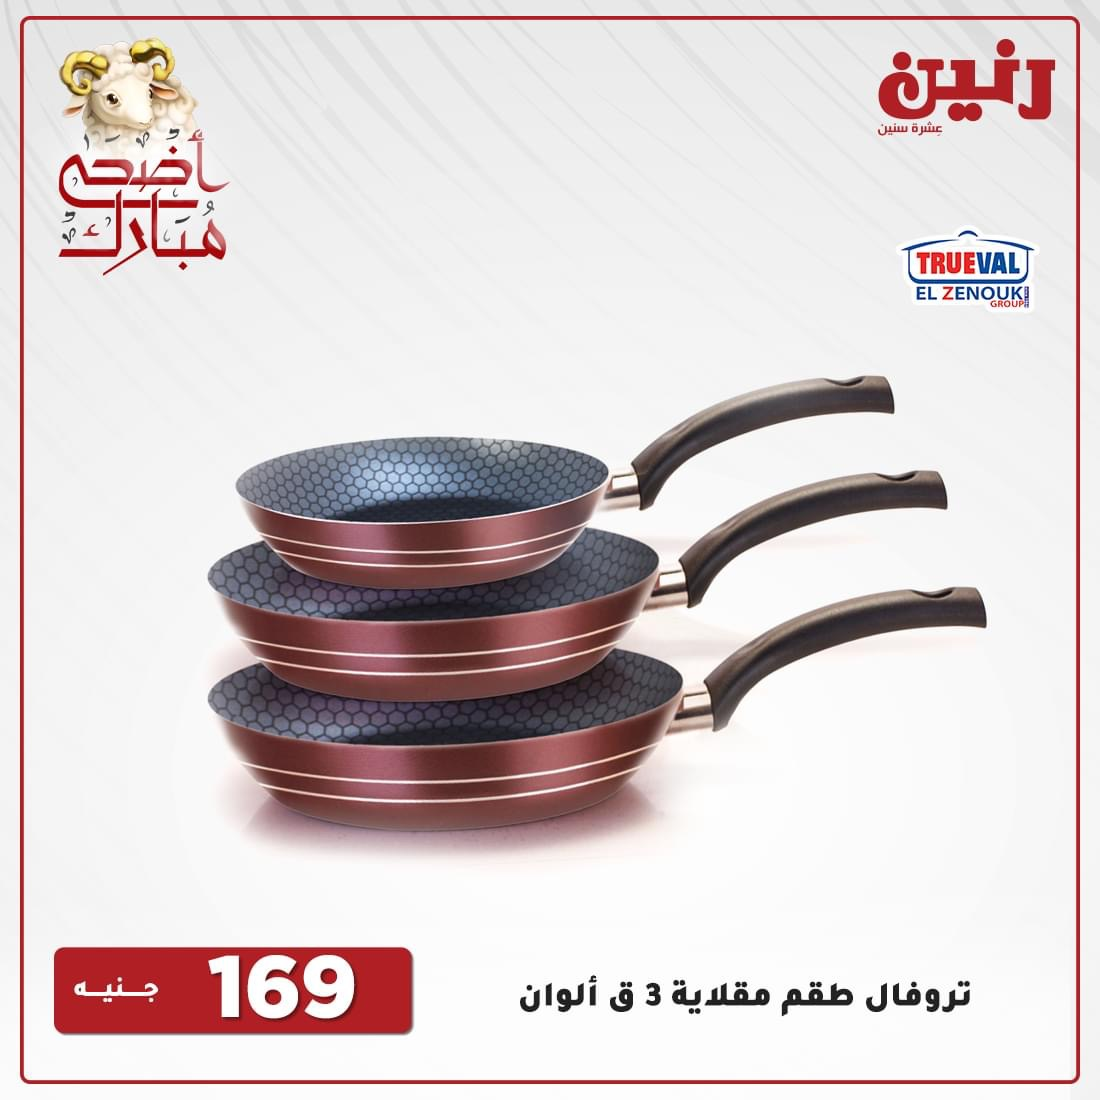 Raneen offers today for appliances and household appliances from July 22 to 24, 2021 24